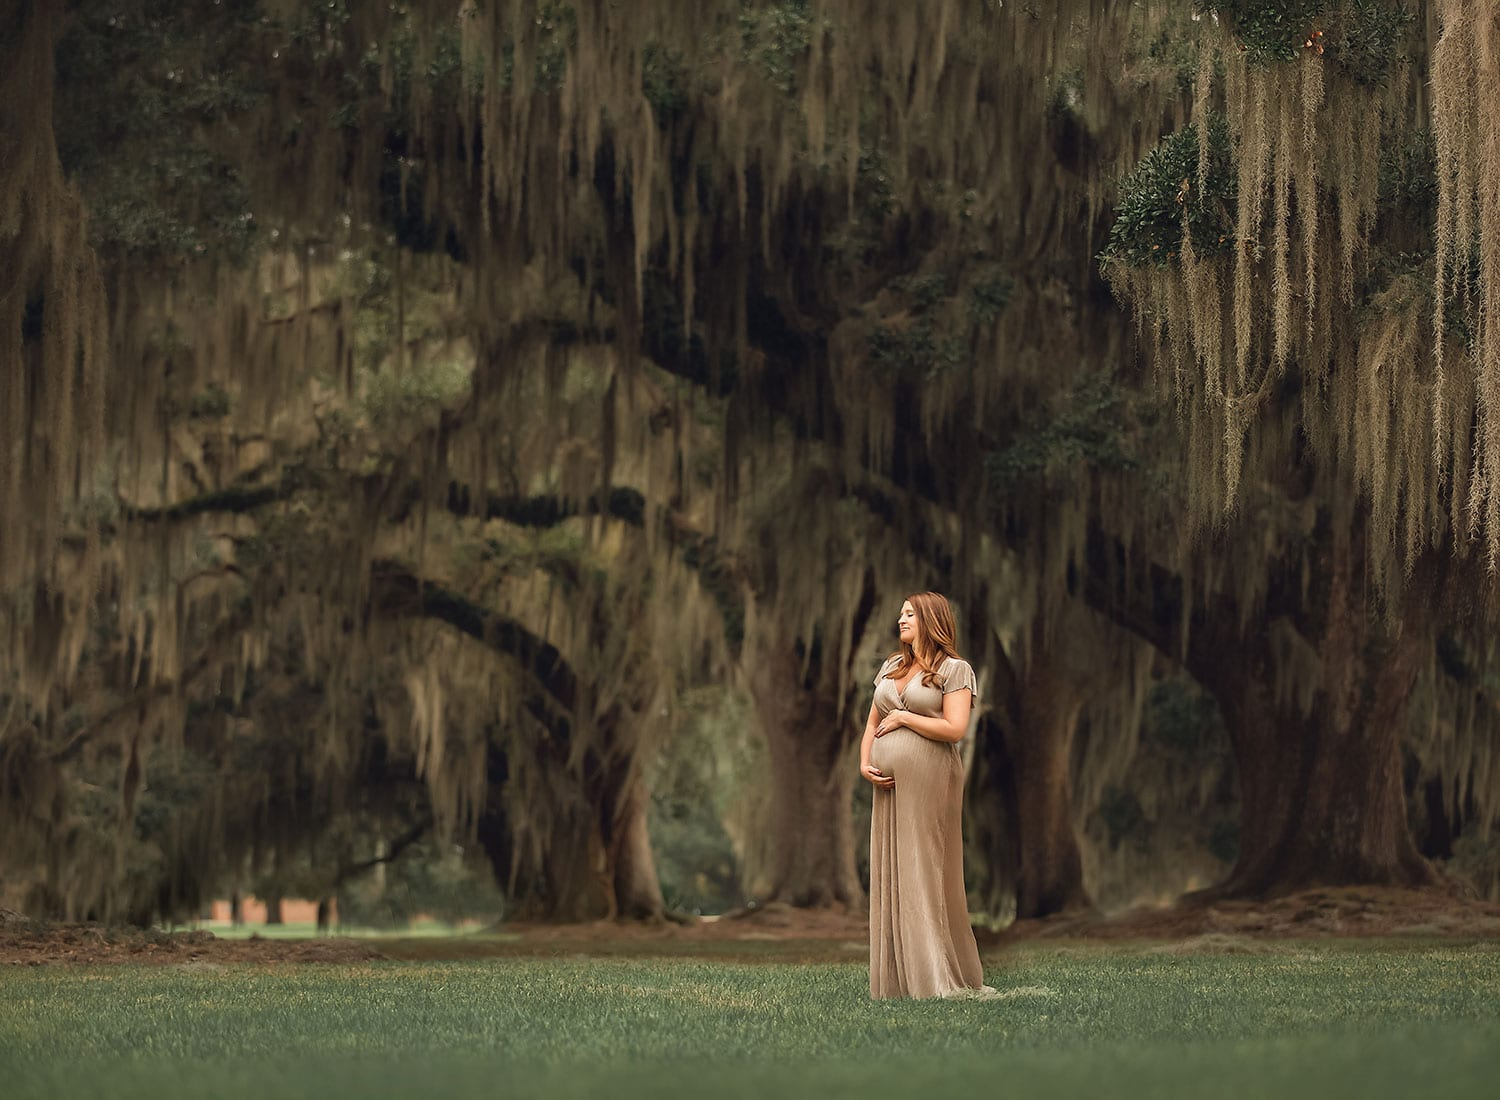 Stunning maternity session under the large oak trees in Louisiana